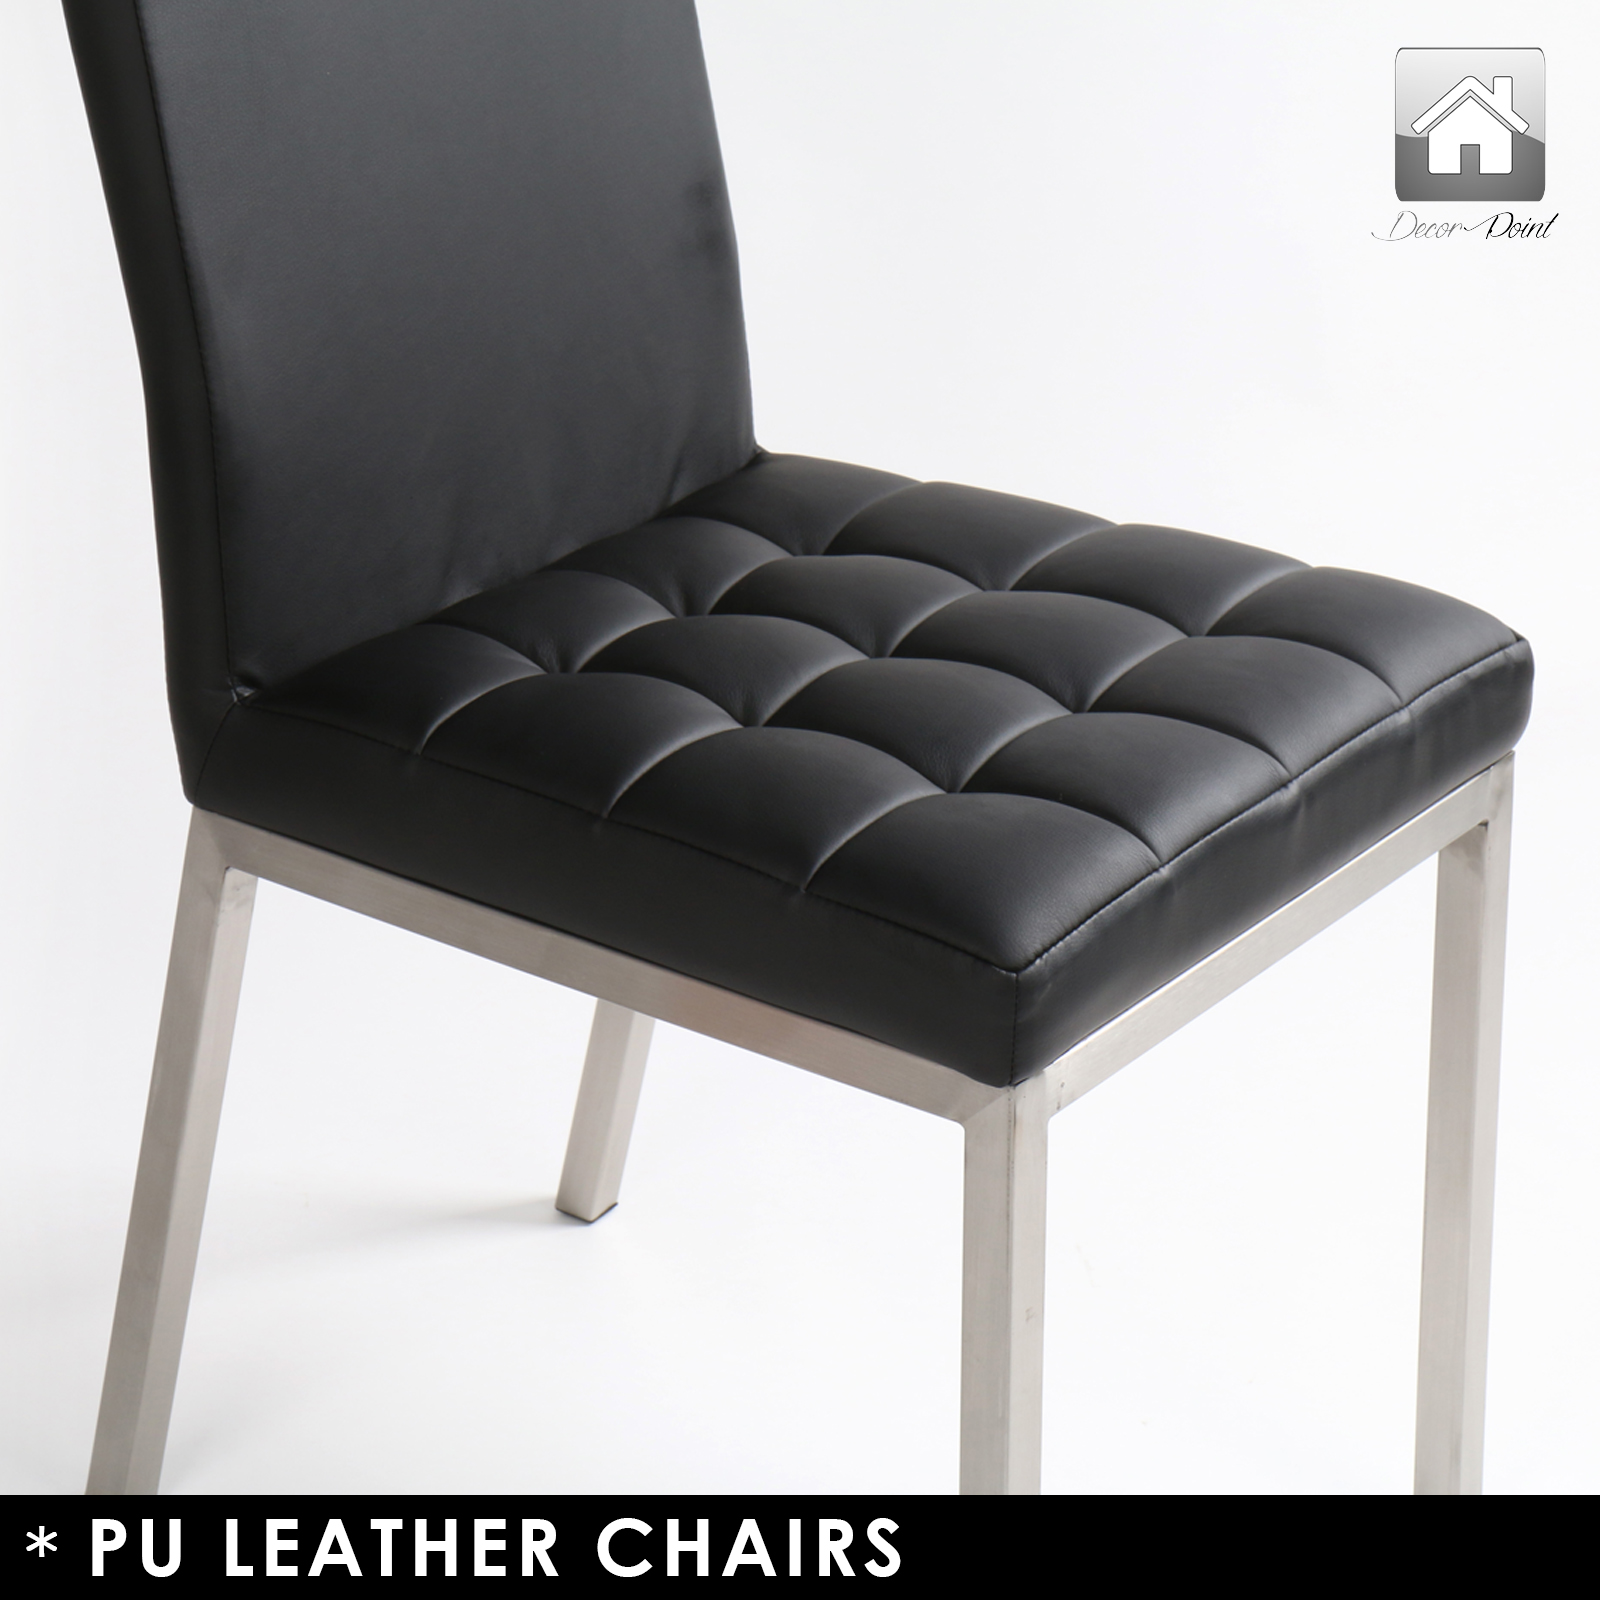 dining chairs with stainless steel legs swivel tub 4 x new luxury shanghai pu leather